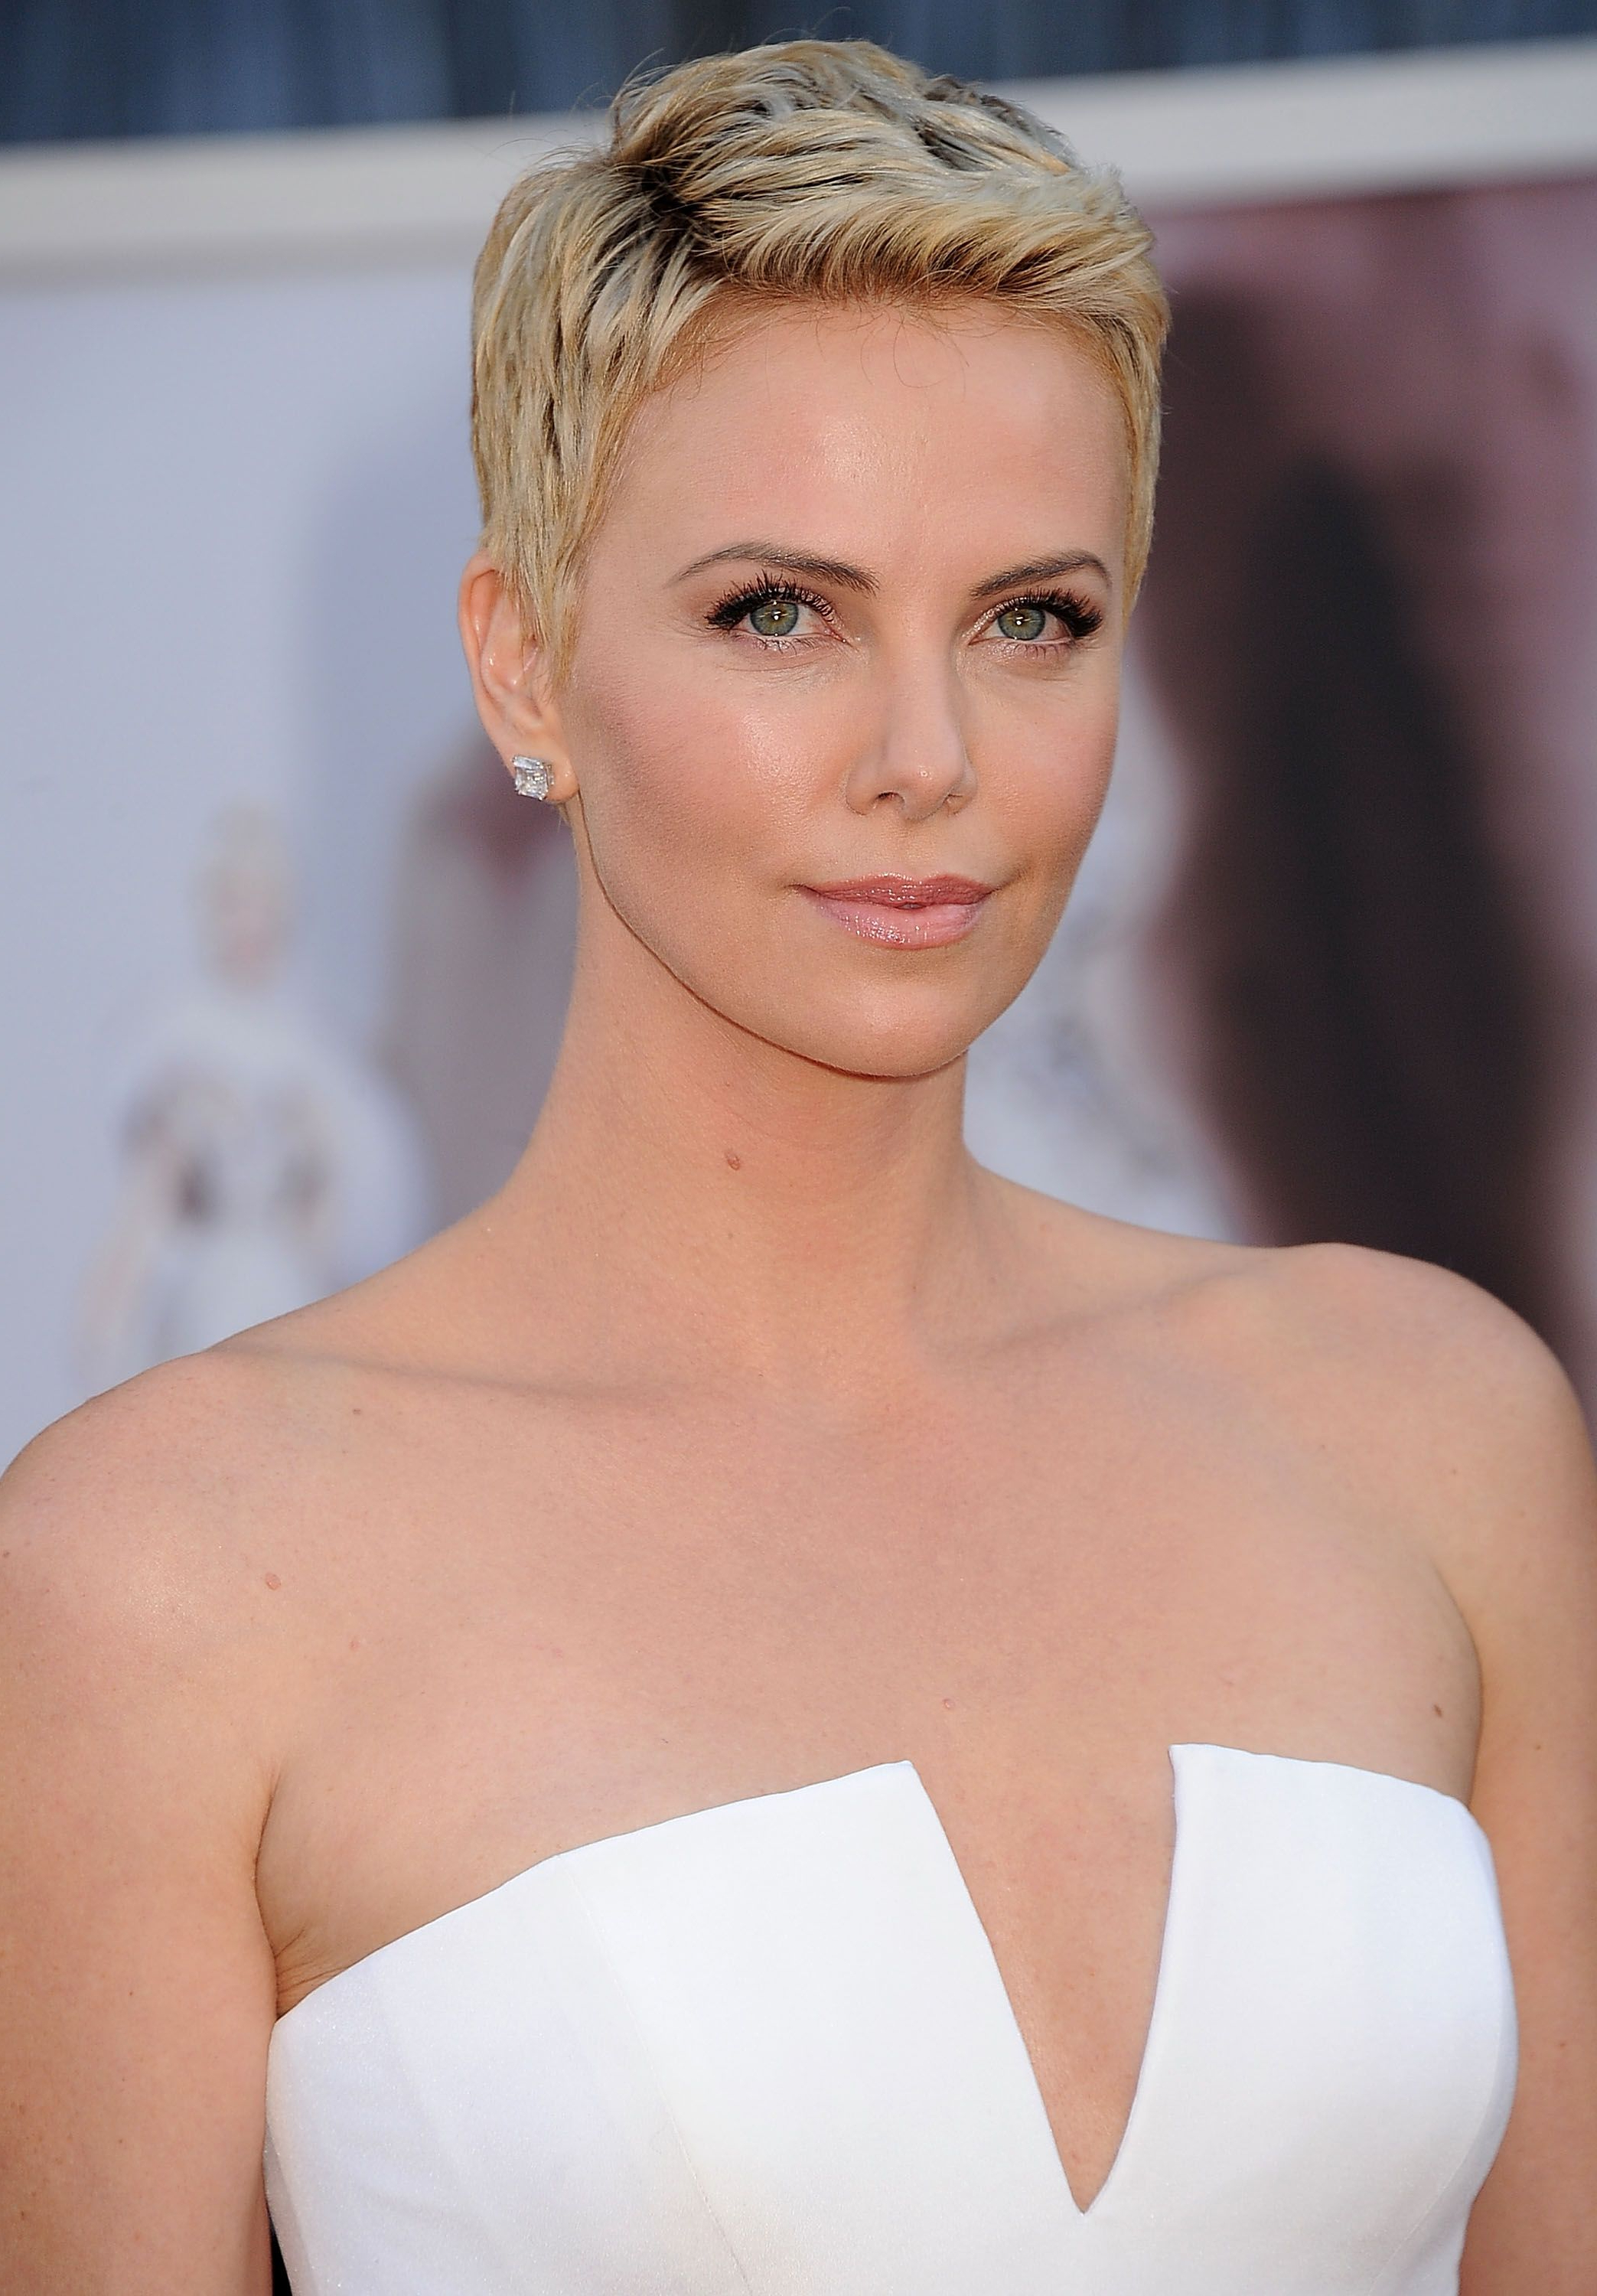 40 Best Short Pixie Cut Hairstyles 2018 – Cute Pixie Haircuts For Women Pertaining To Super Short Haircuts For Girls (View 10 of 25)